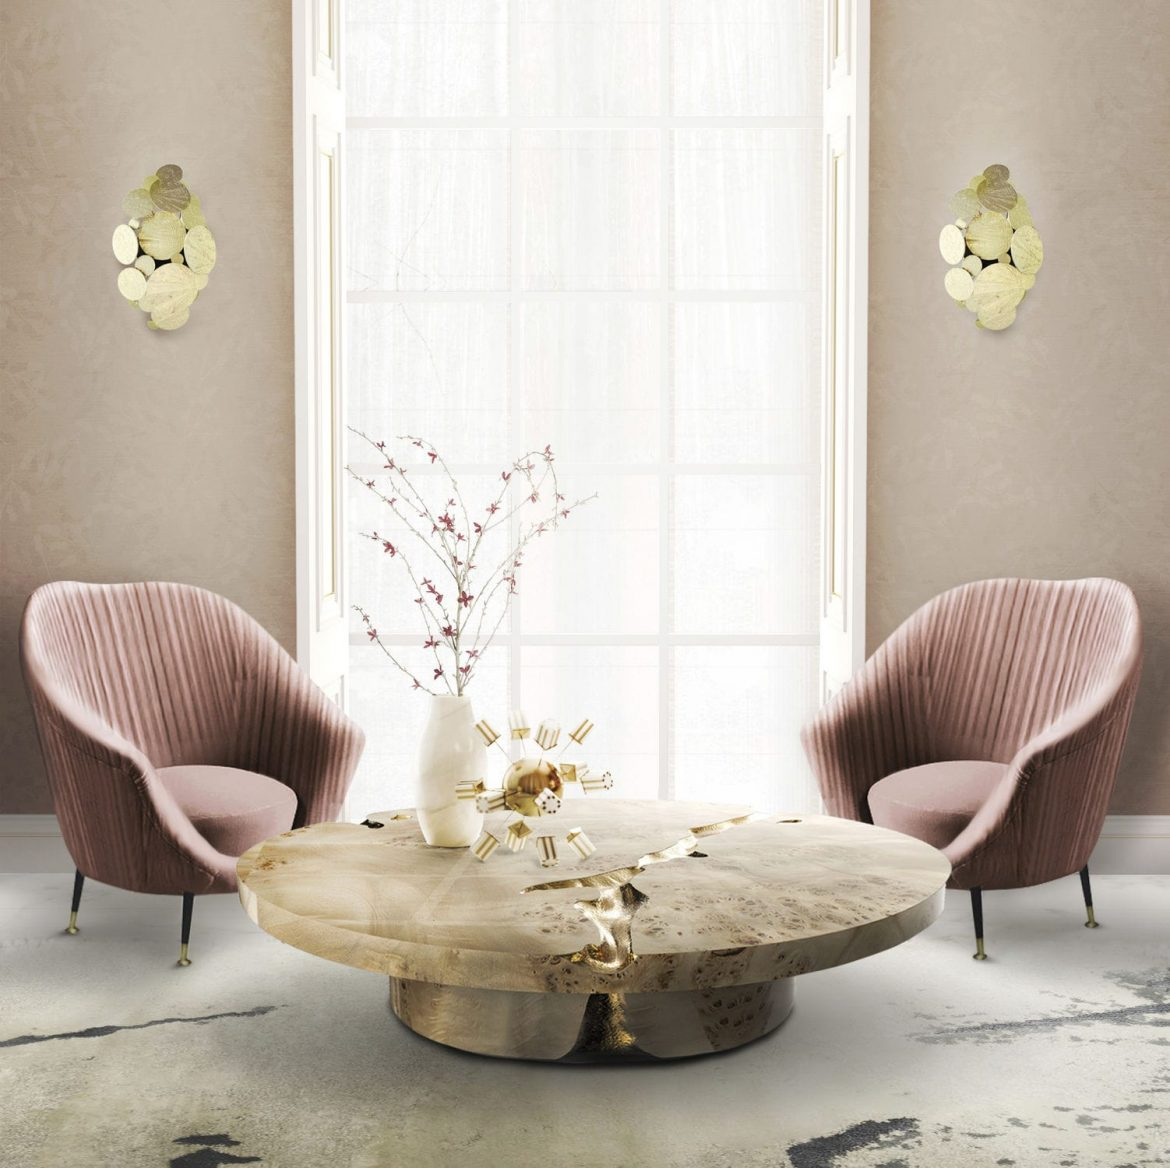 5 Stylish Coffee Tables For YourLiving room